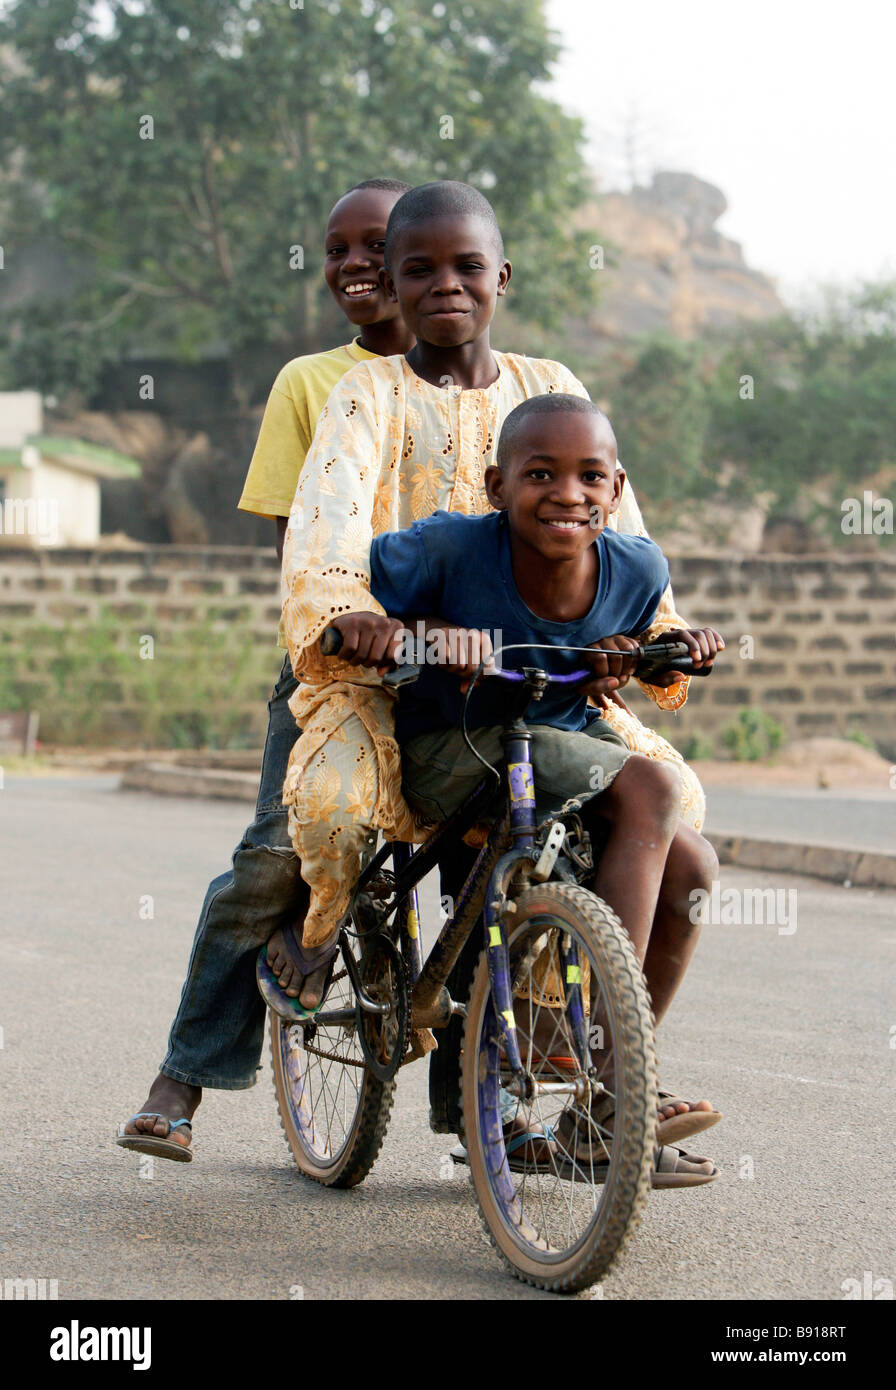 Three boys on a bicycle - Stock Image